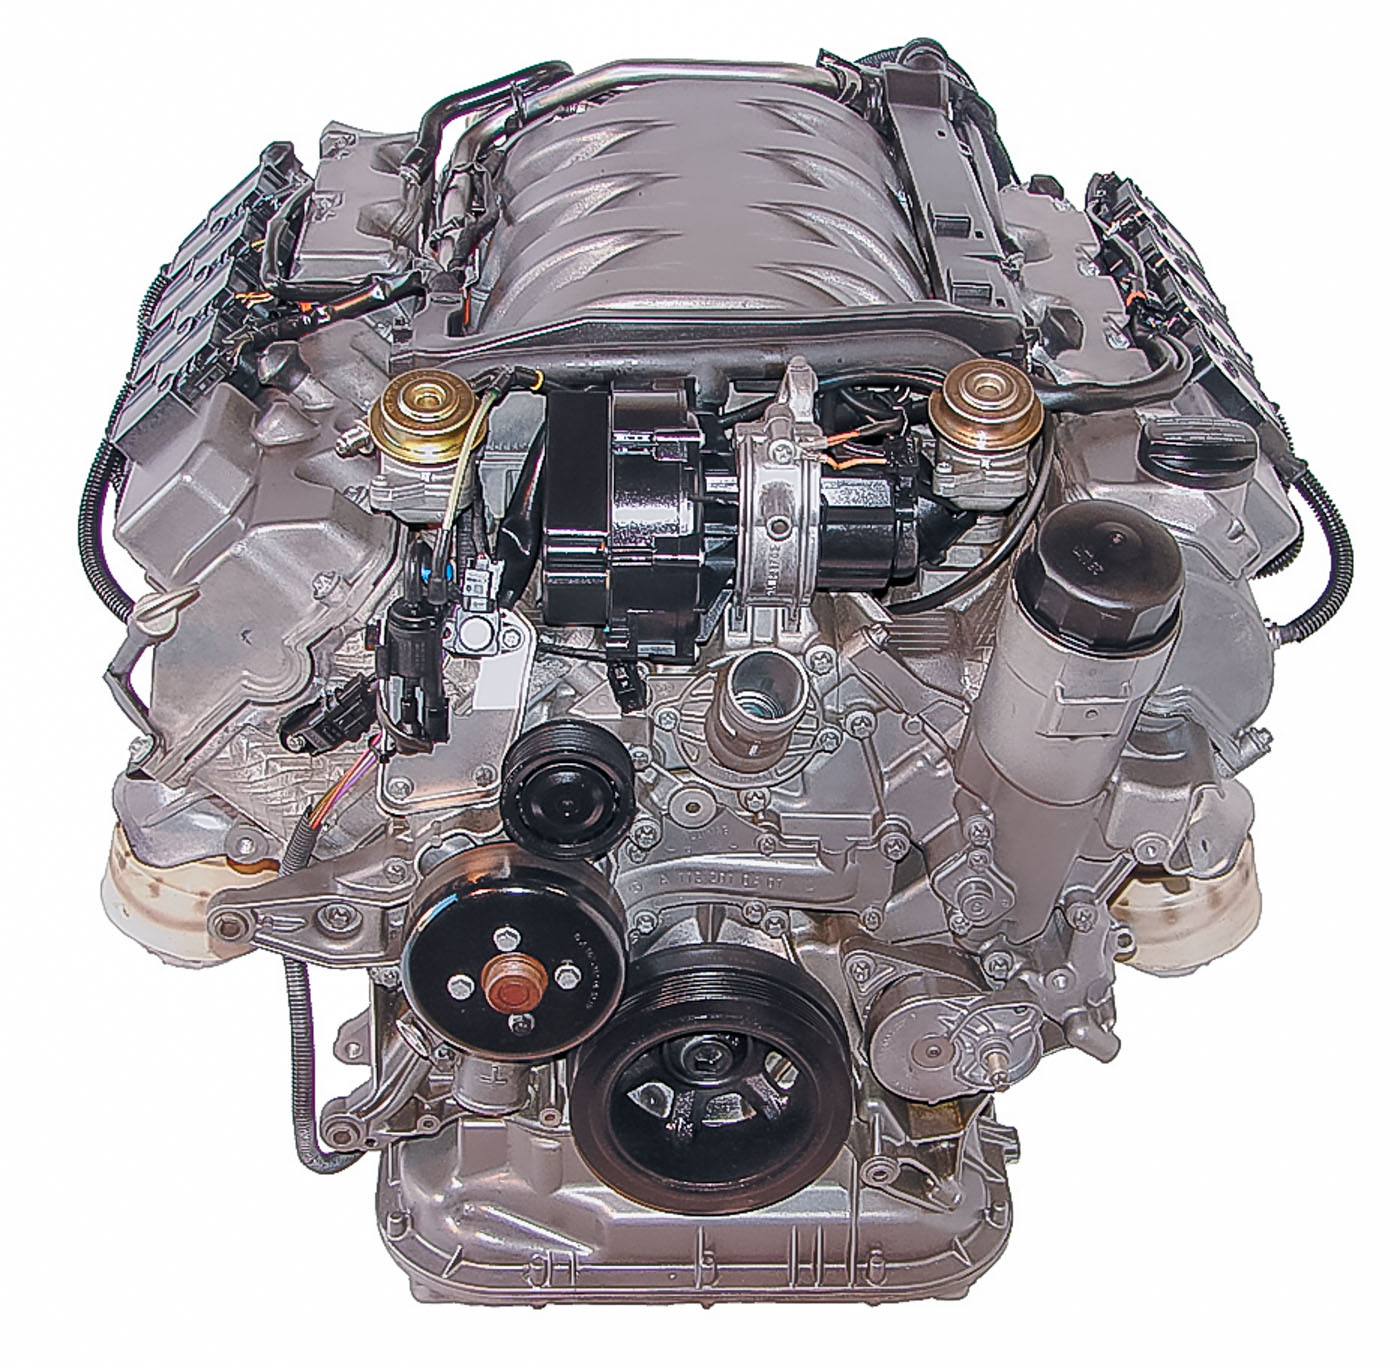 Mercedes Engine on 1991 Dodge Dakota 5 2 V8